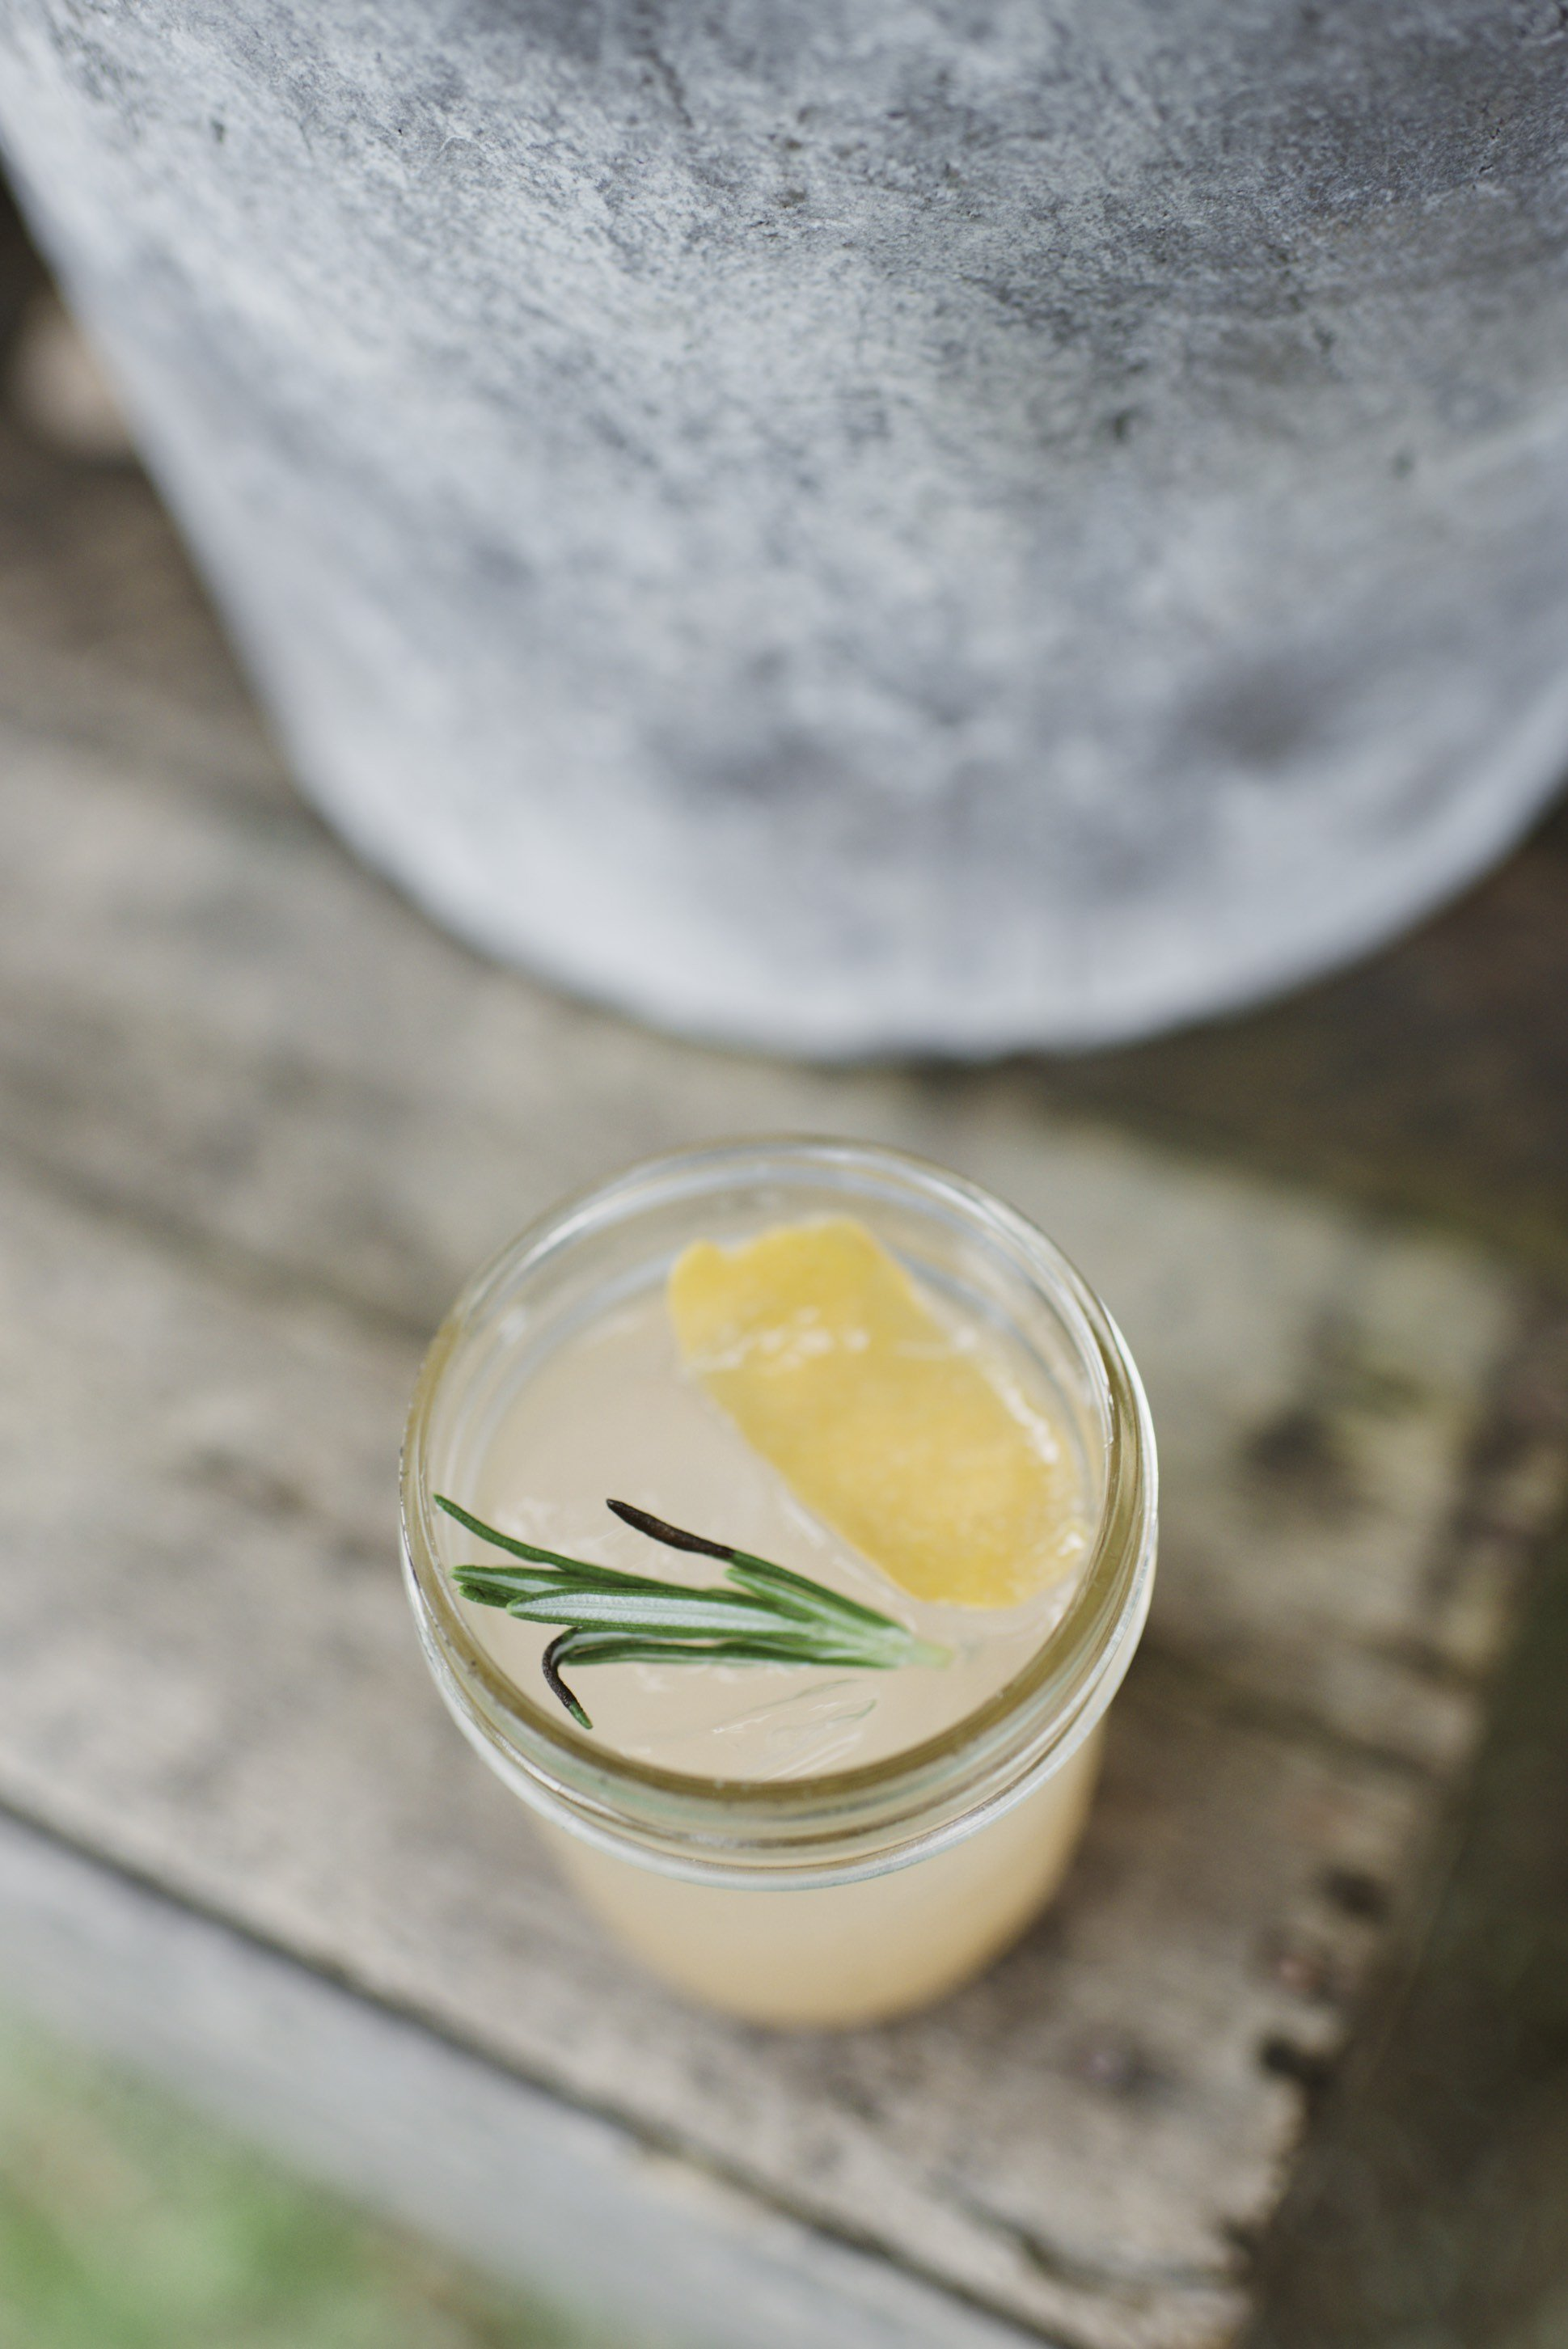 Mixed Drink with Lemon and Rosemary